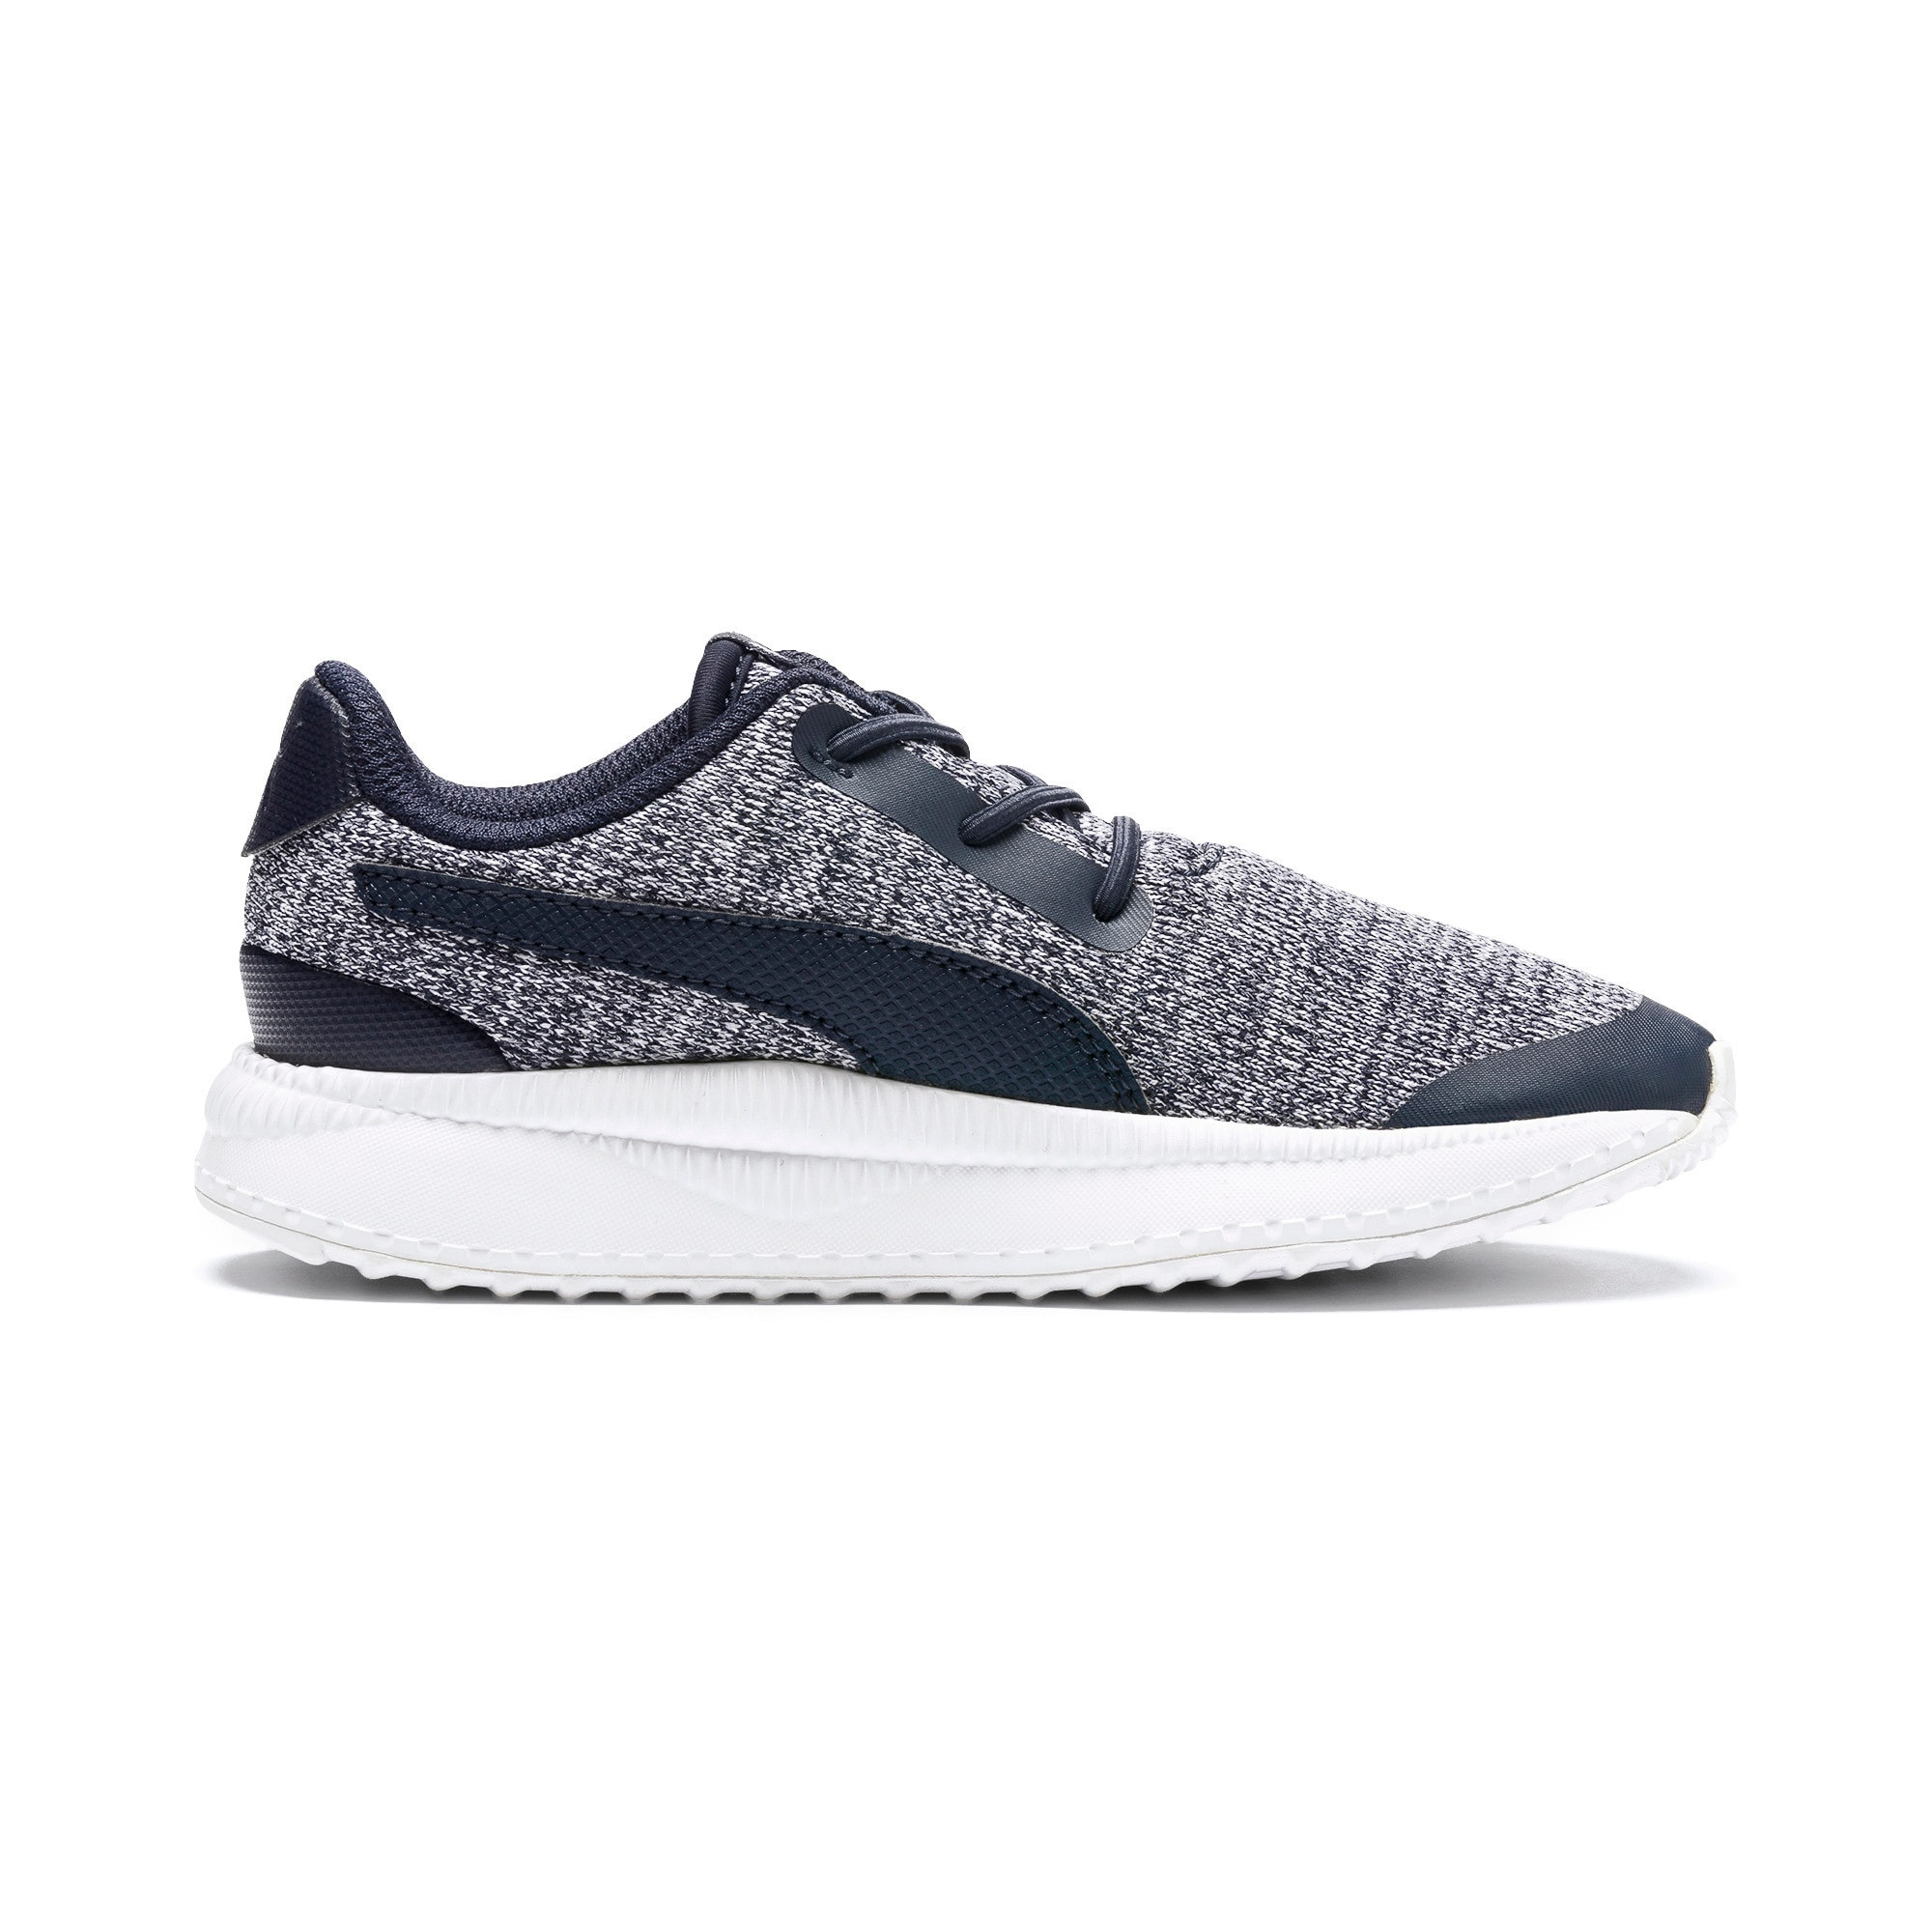 Thumbnail 5 of Pacer Next FS Knit AC Kids' Trainers, Peacoat-Puma White, medium